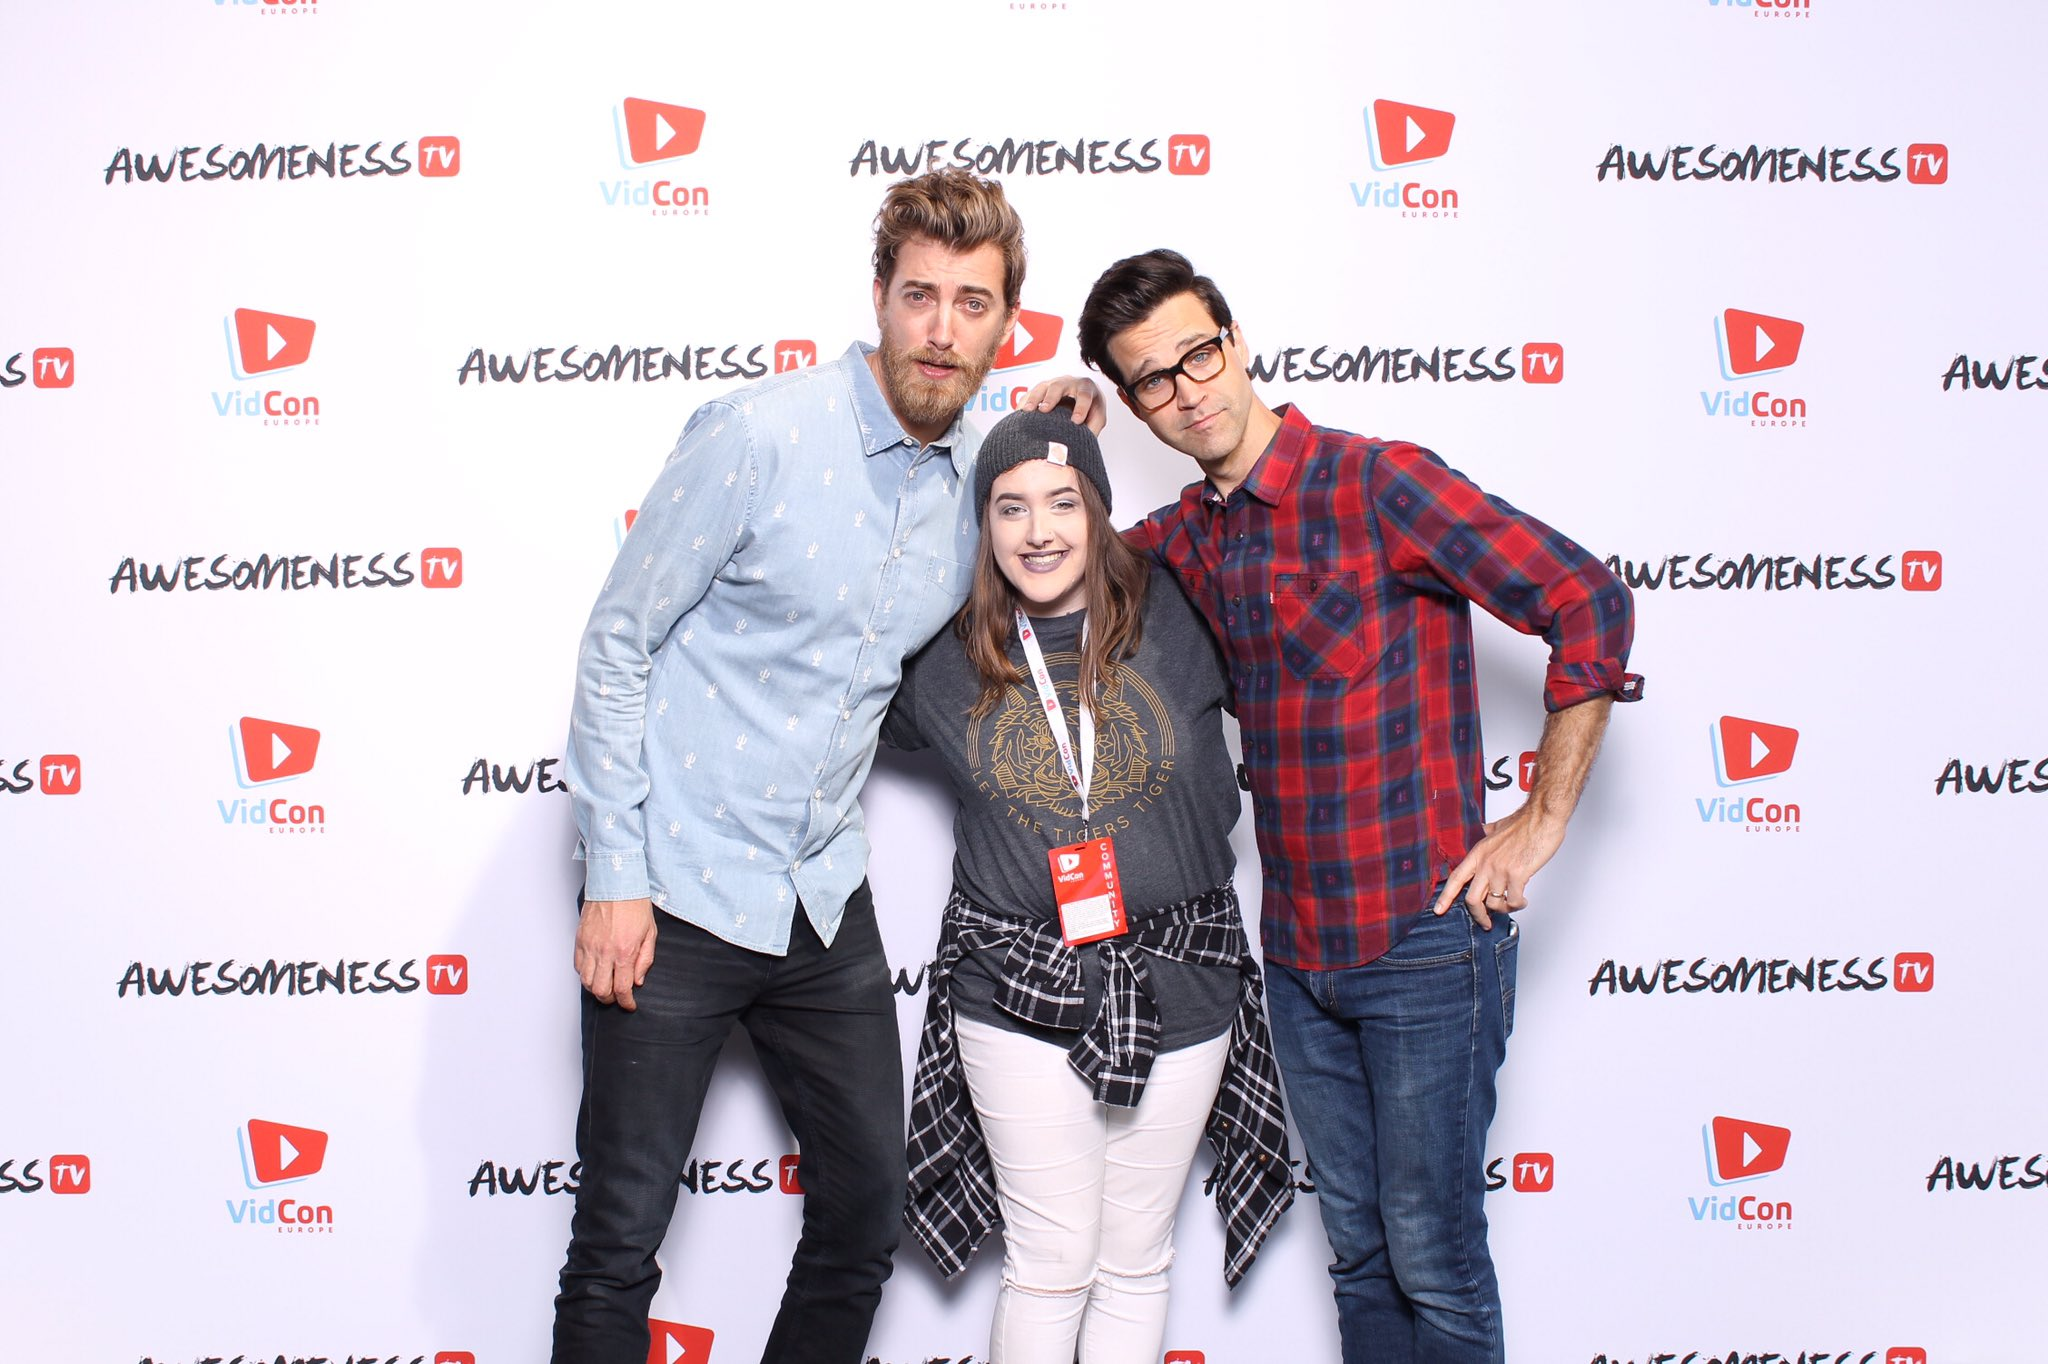 I MET RHETT AND LINK